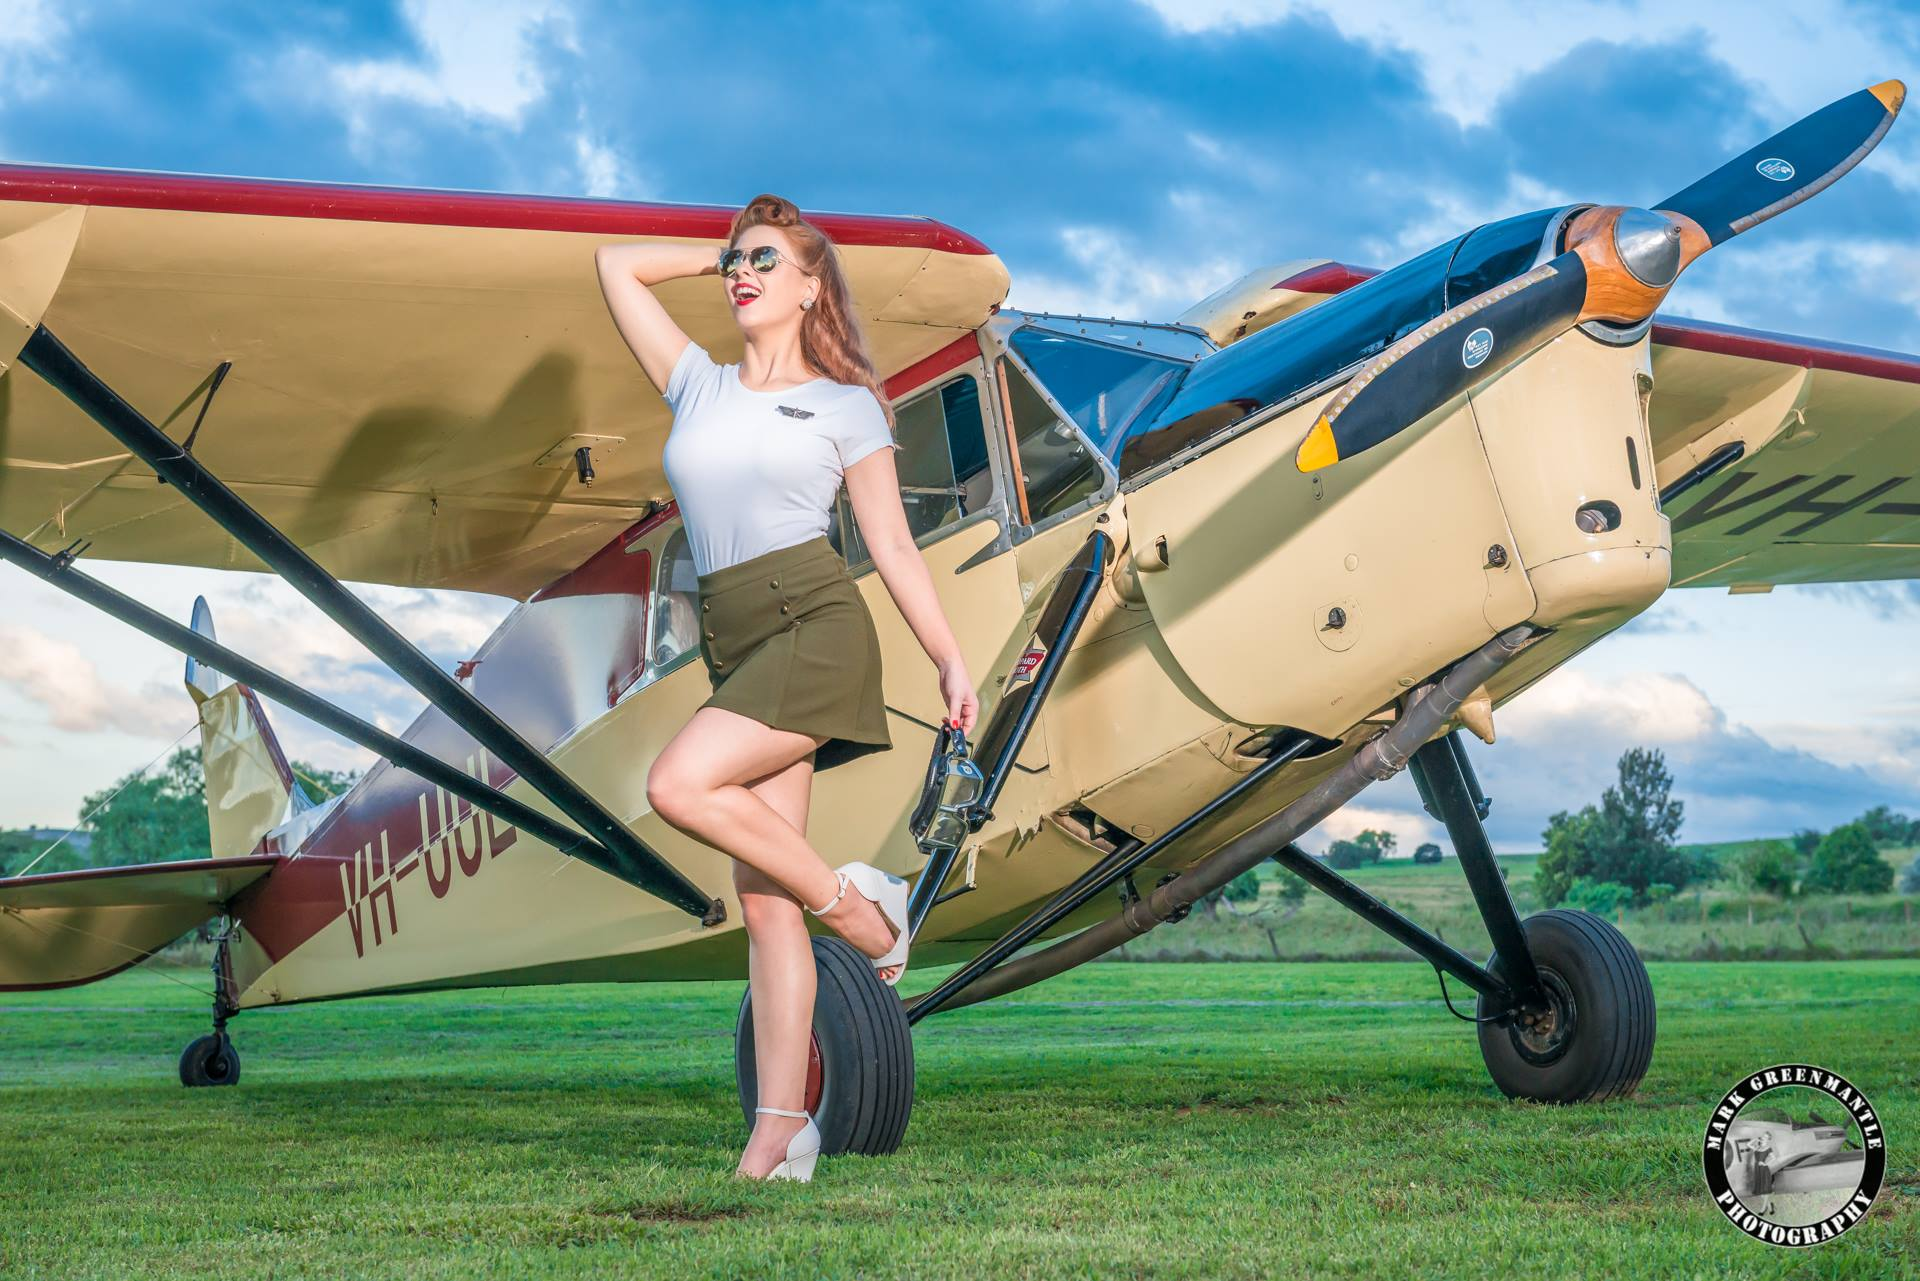 Kelly The Flying Pinup - Photographer Mark Greenmantle 3.jpg